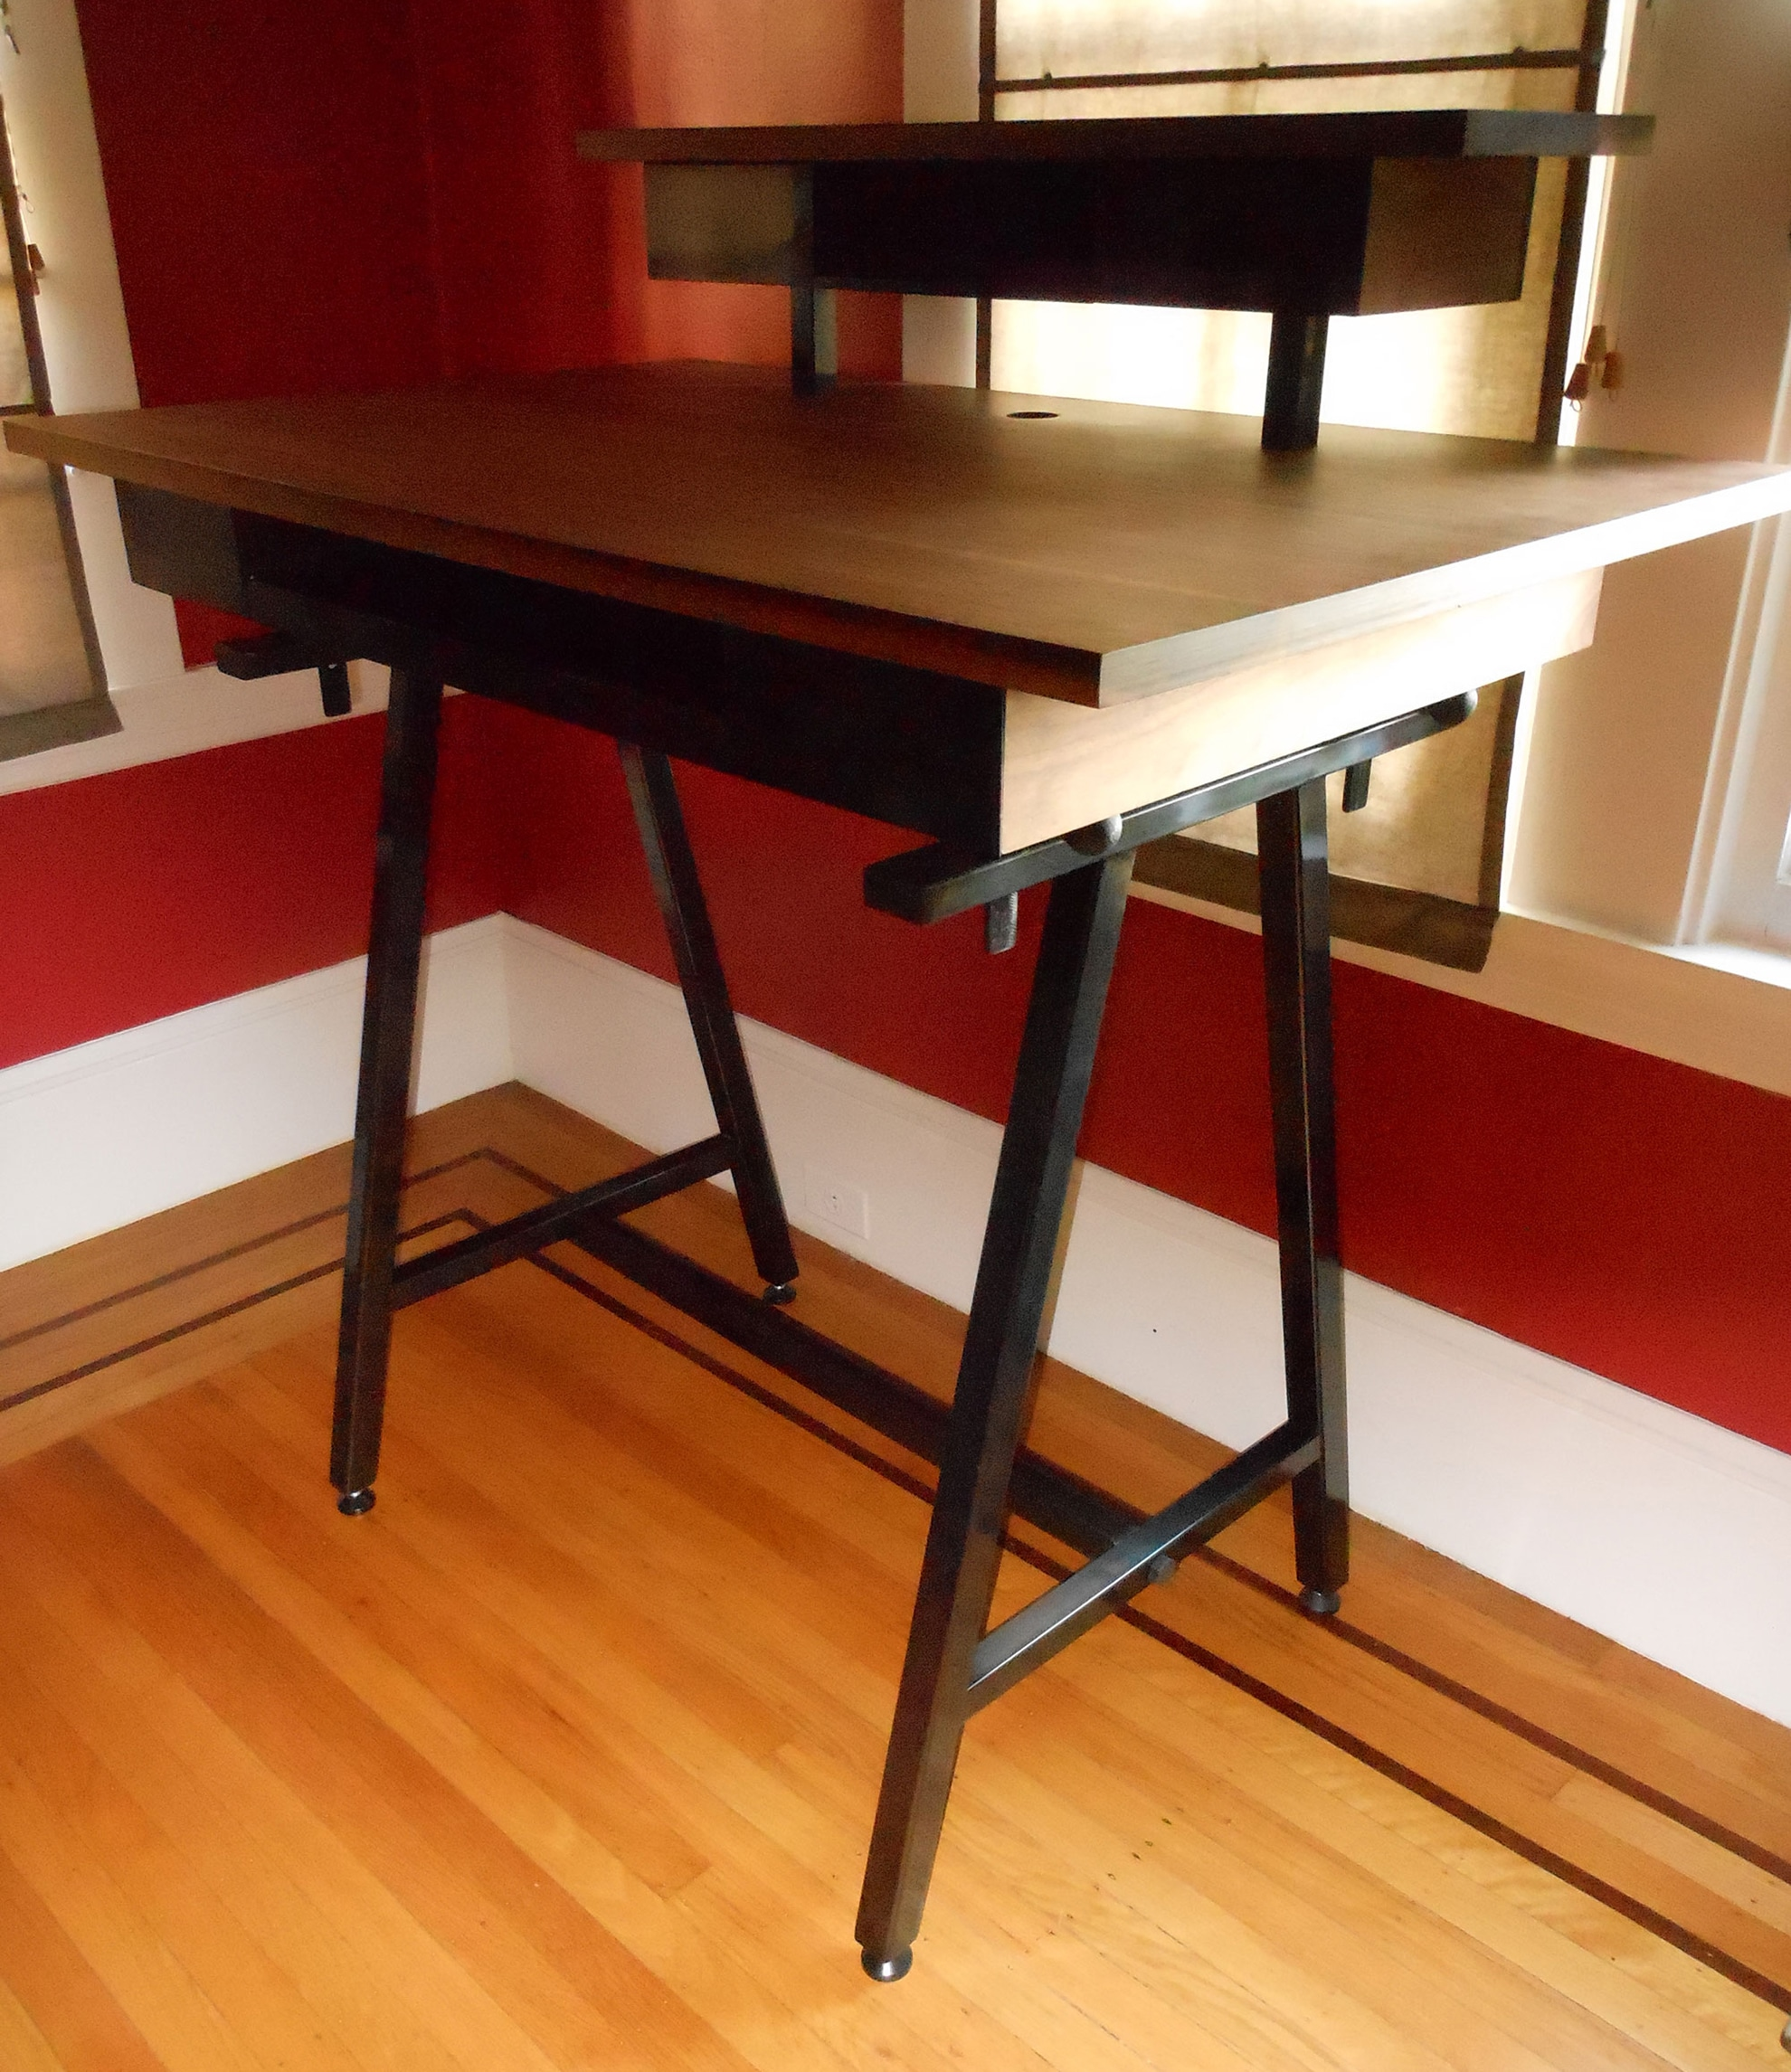 standing desk with 2 tiers